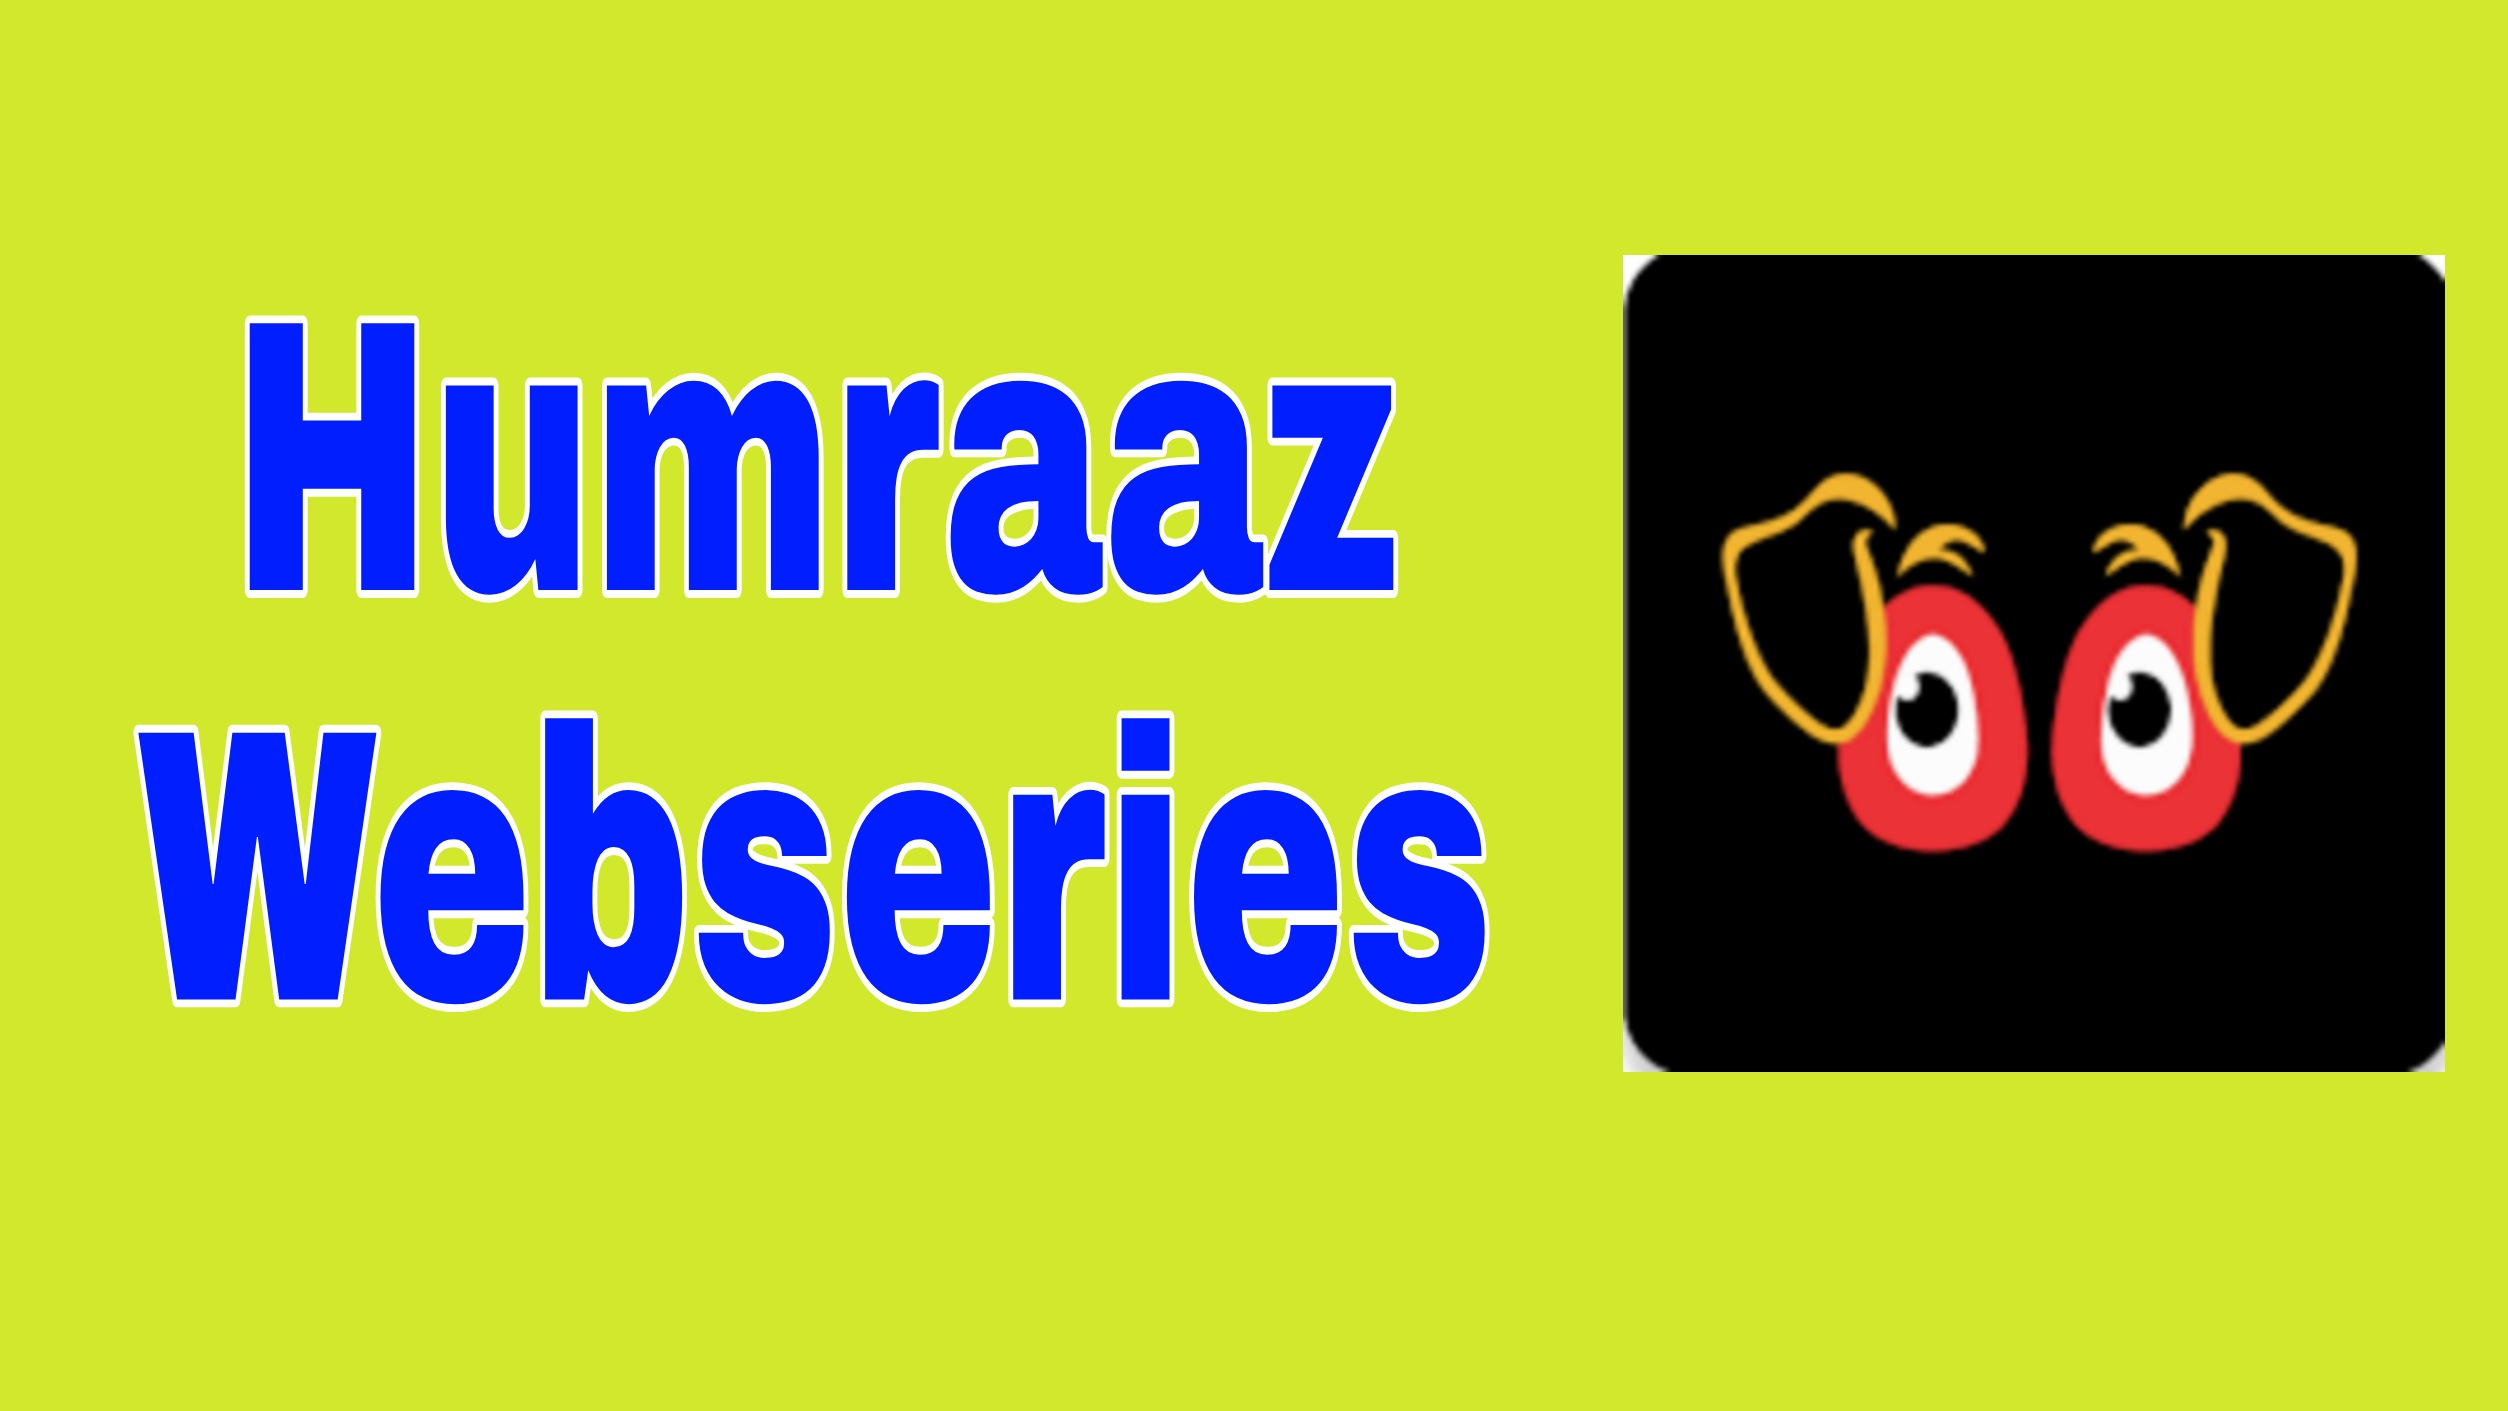 Humraaz Webseries